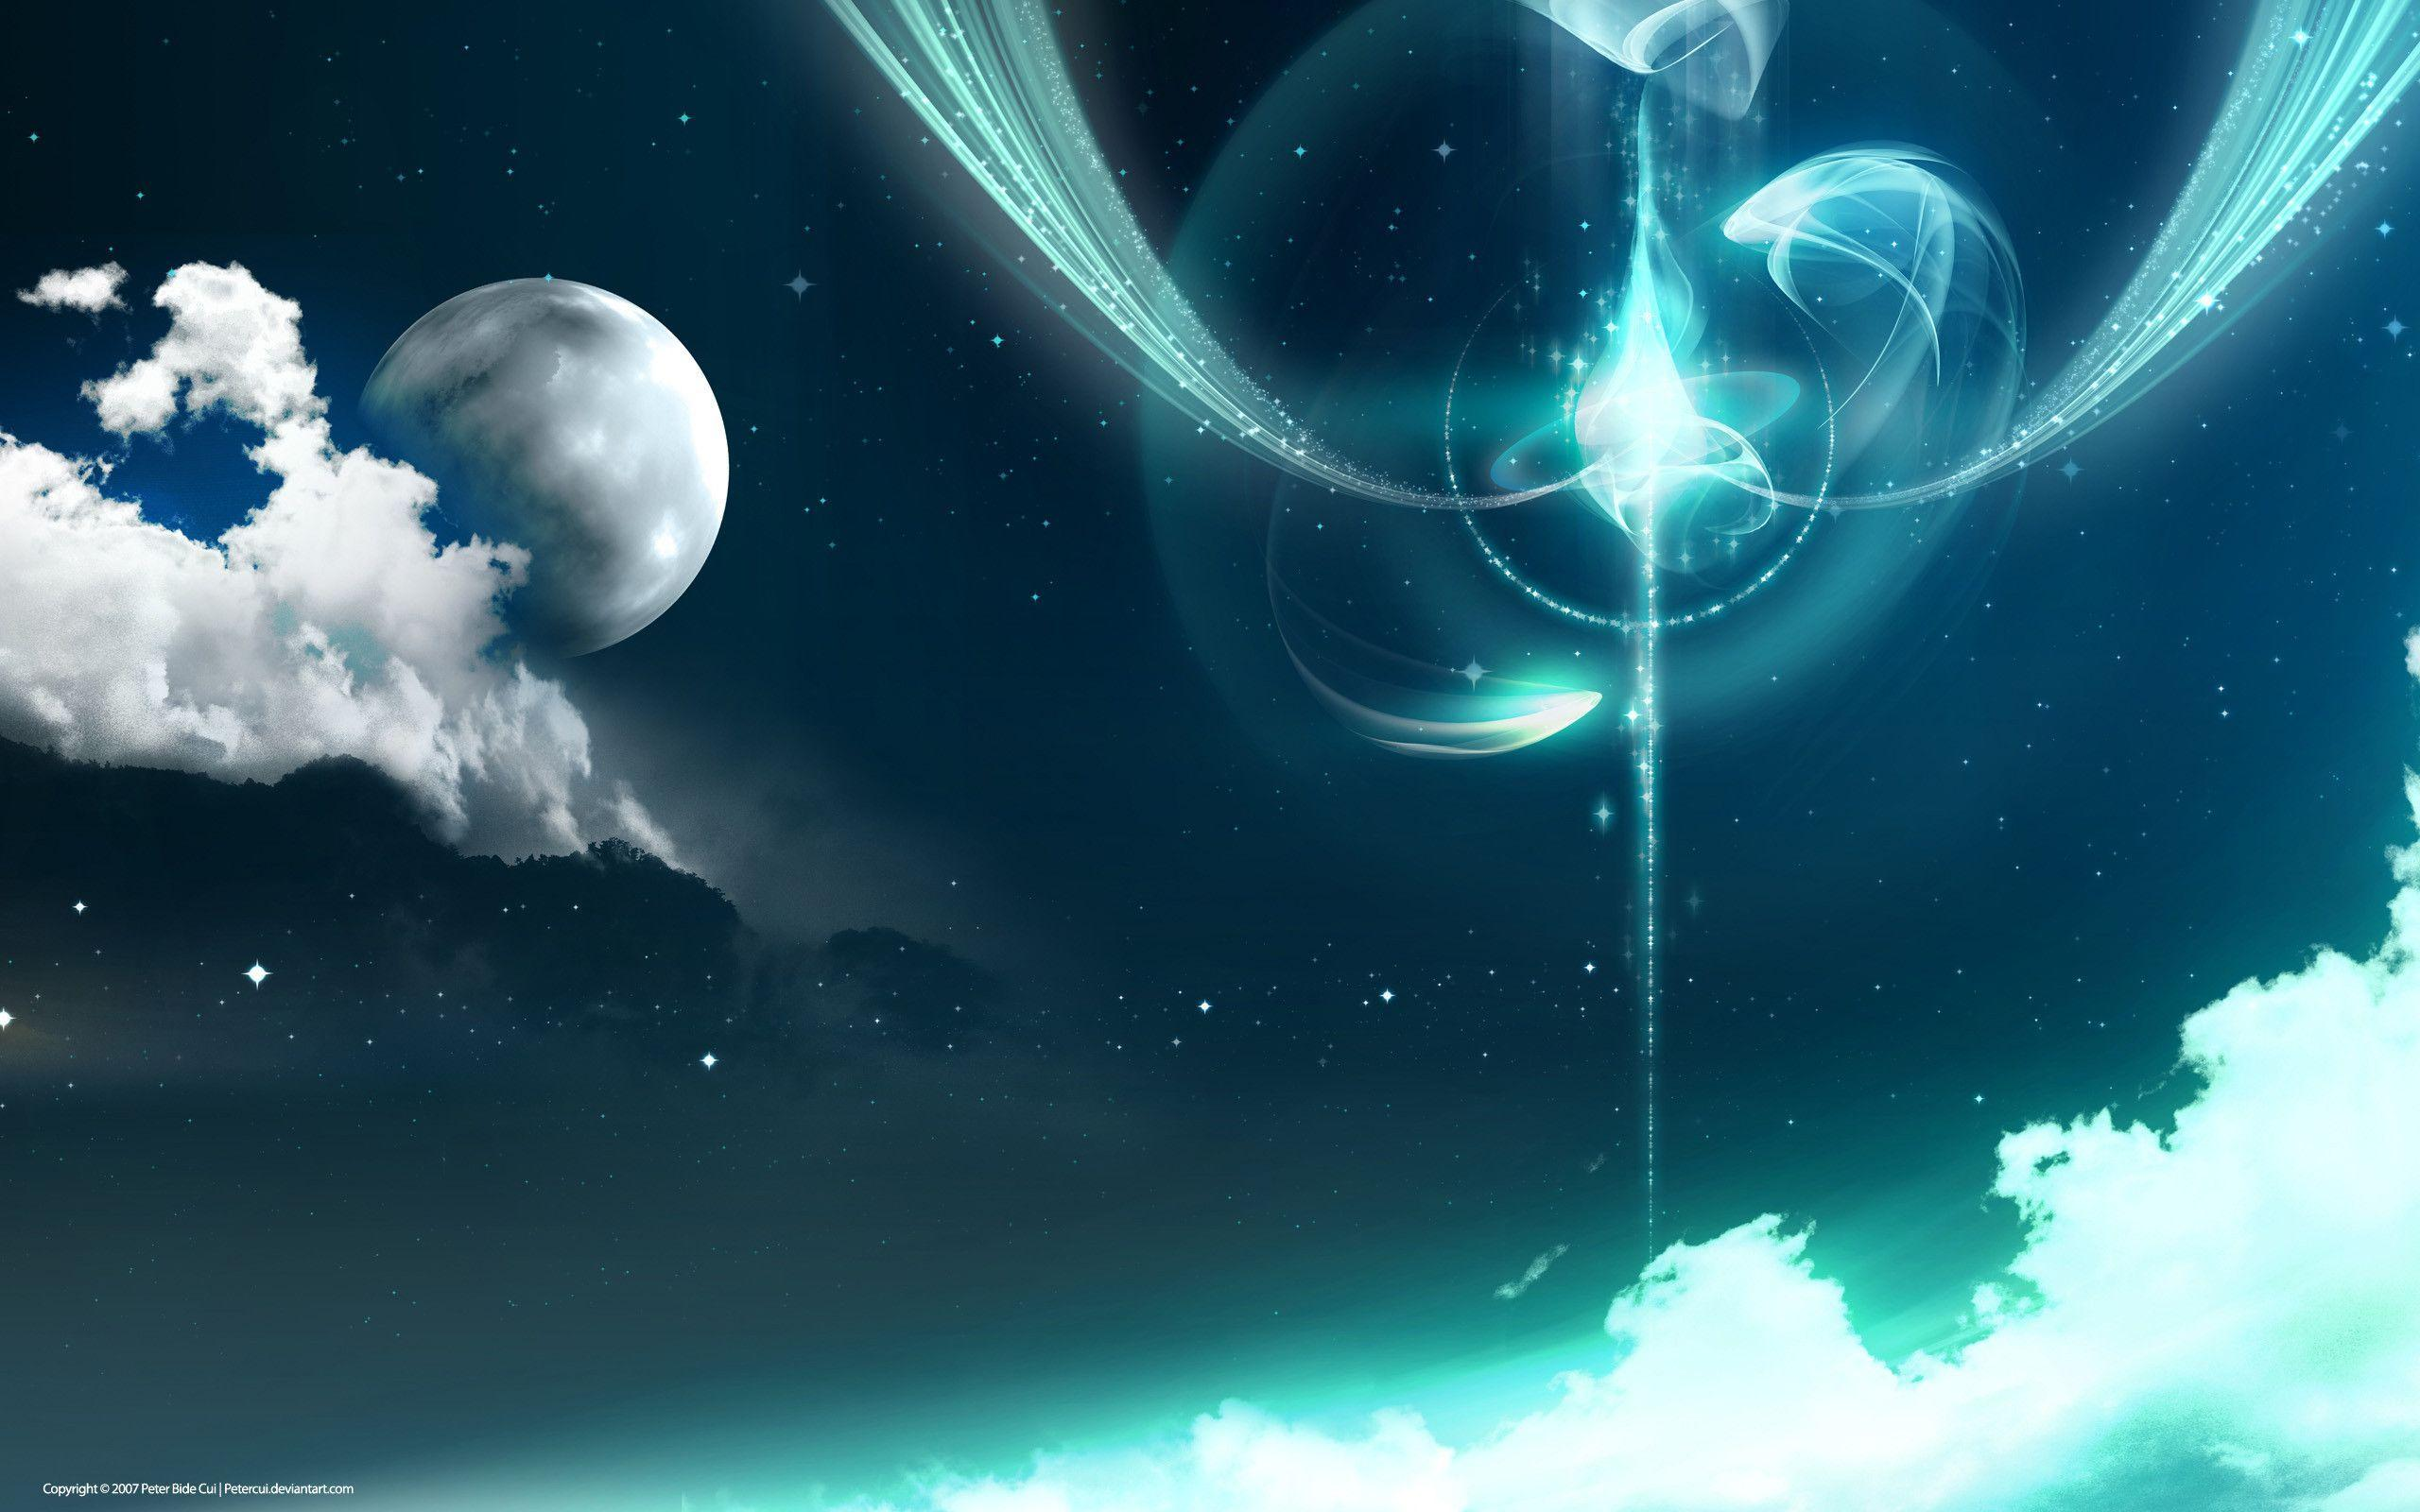 cool space backgrounds - photo #25